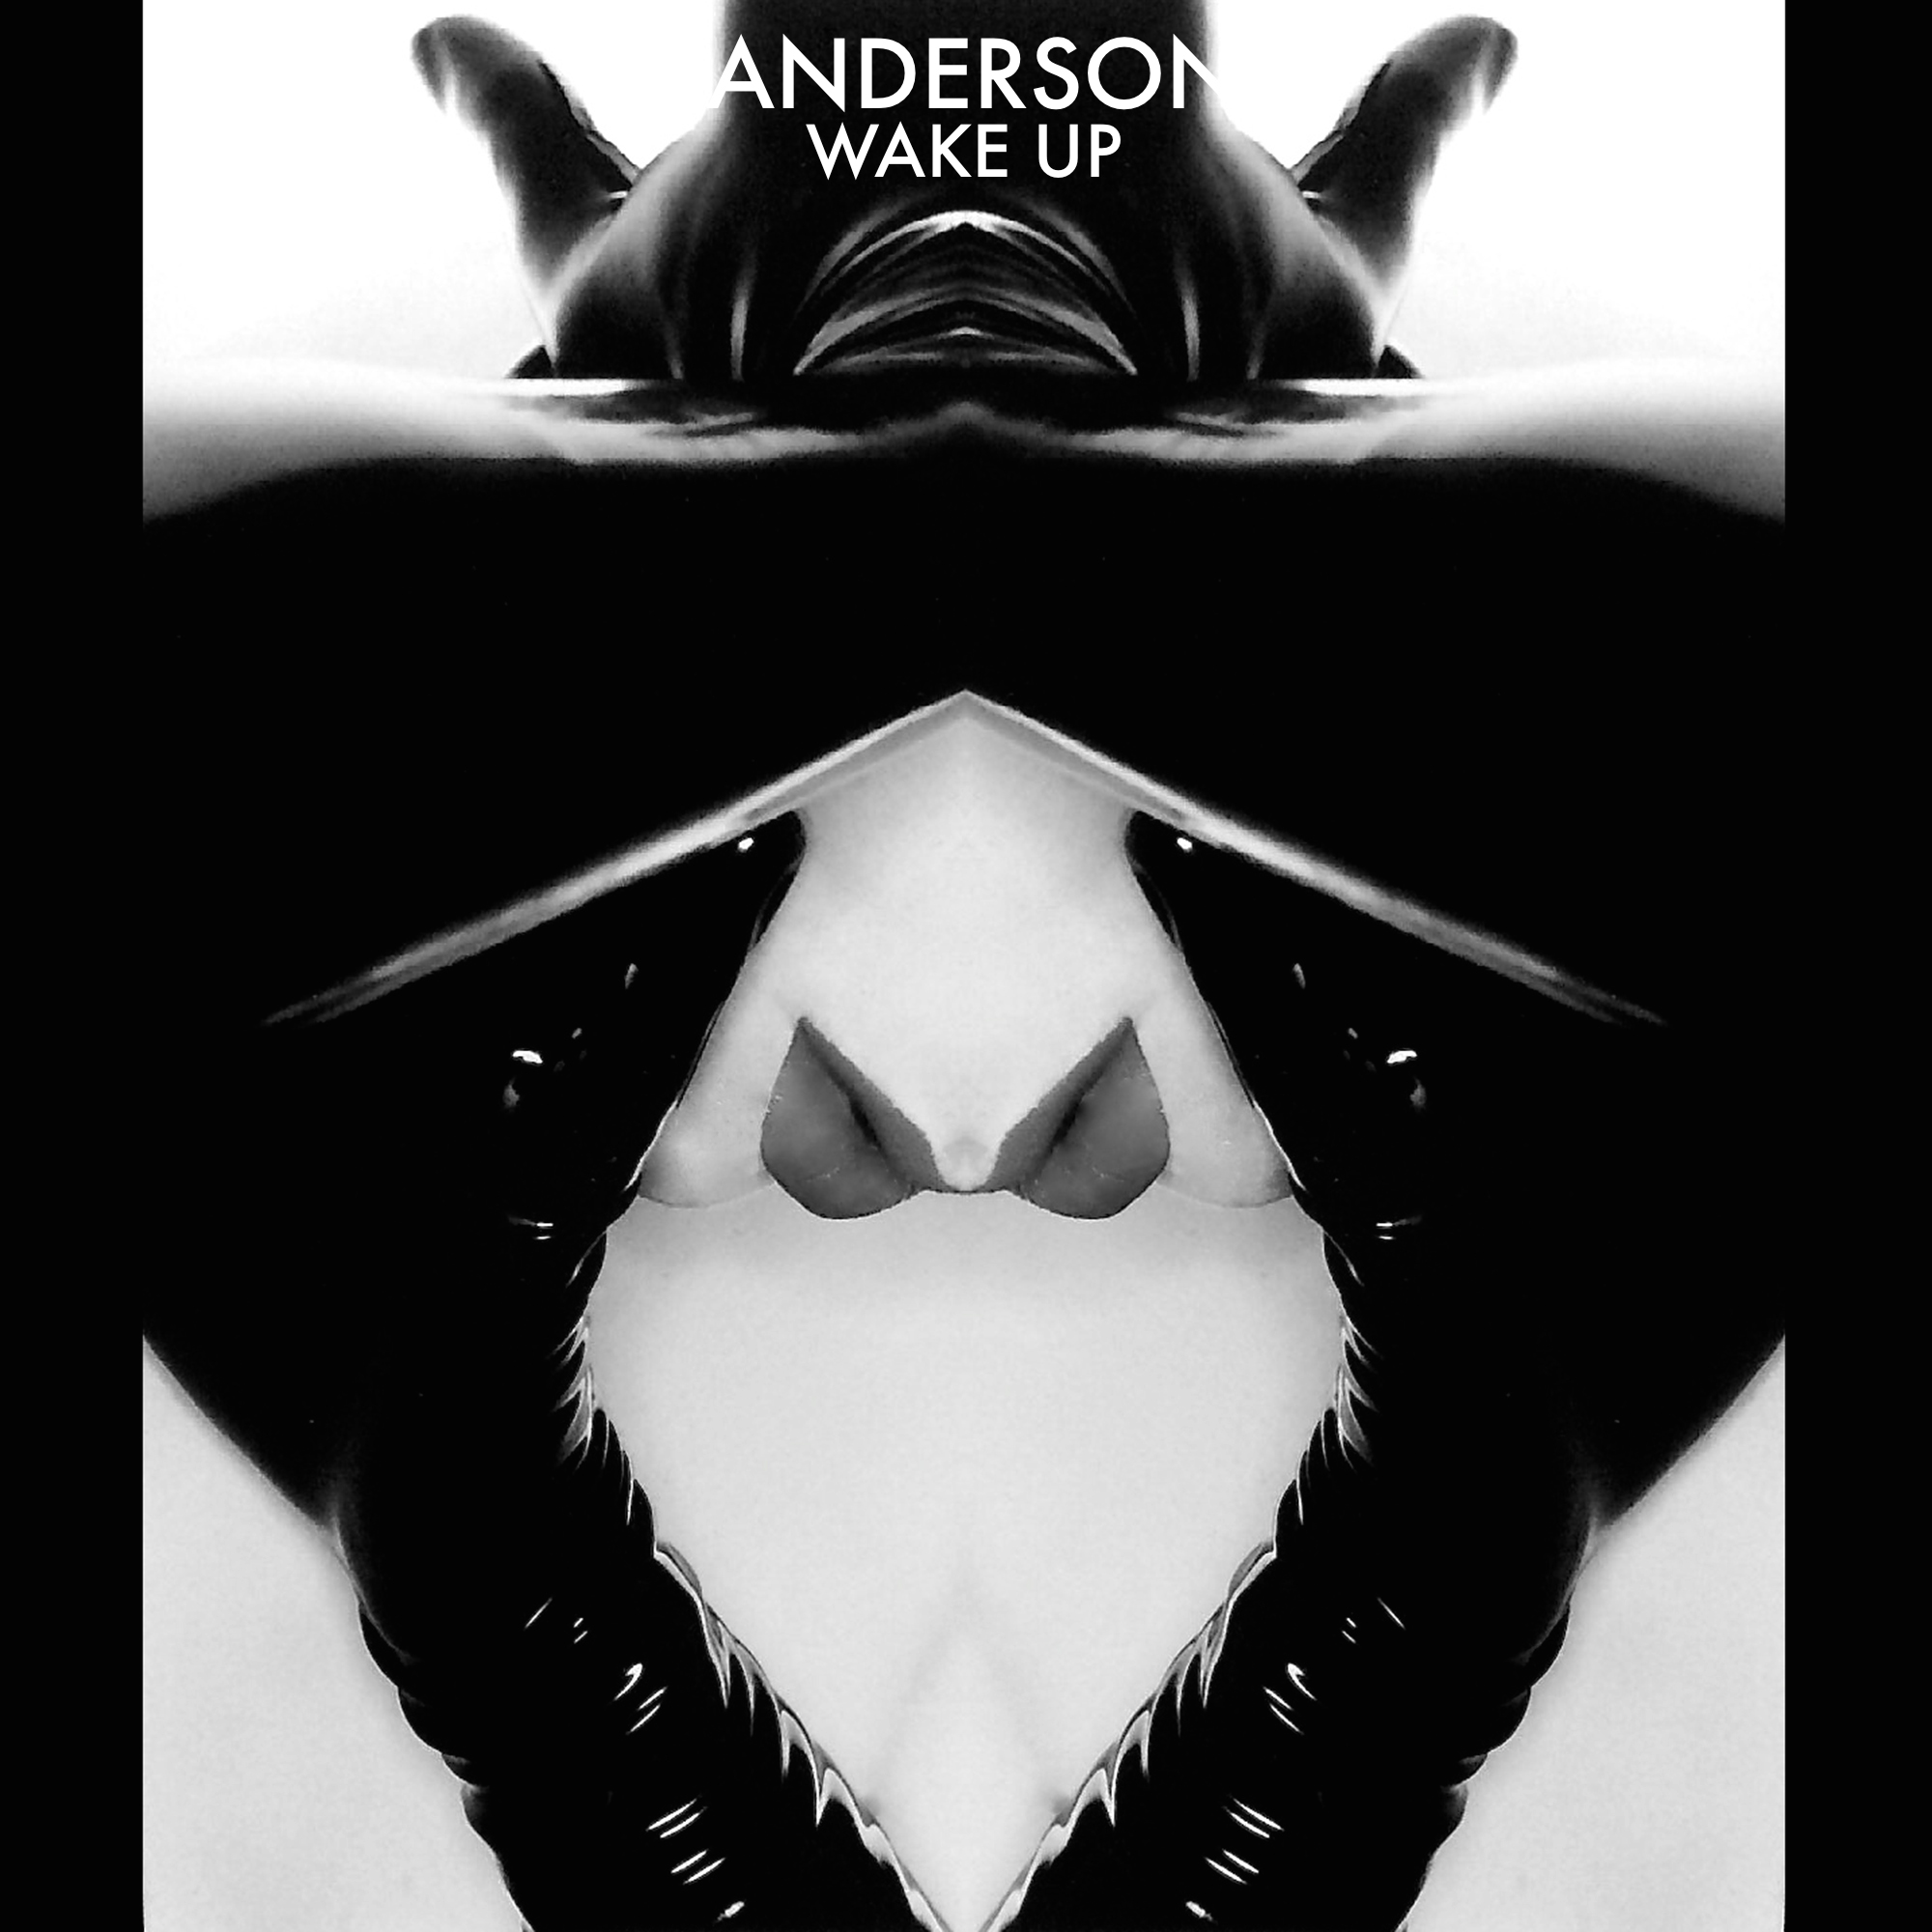 ANDERSON-WAKE-UP SINGLE COVER ARTWORK W:TEXT